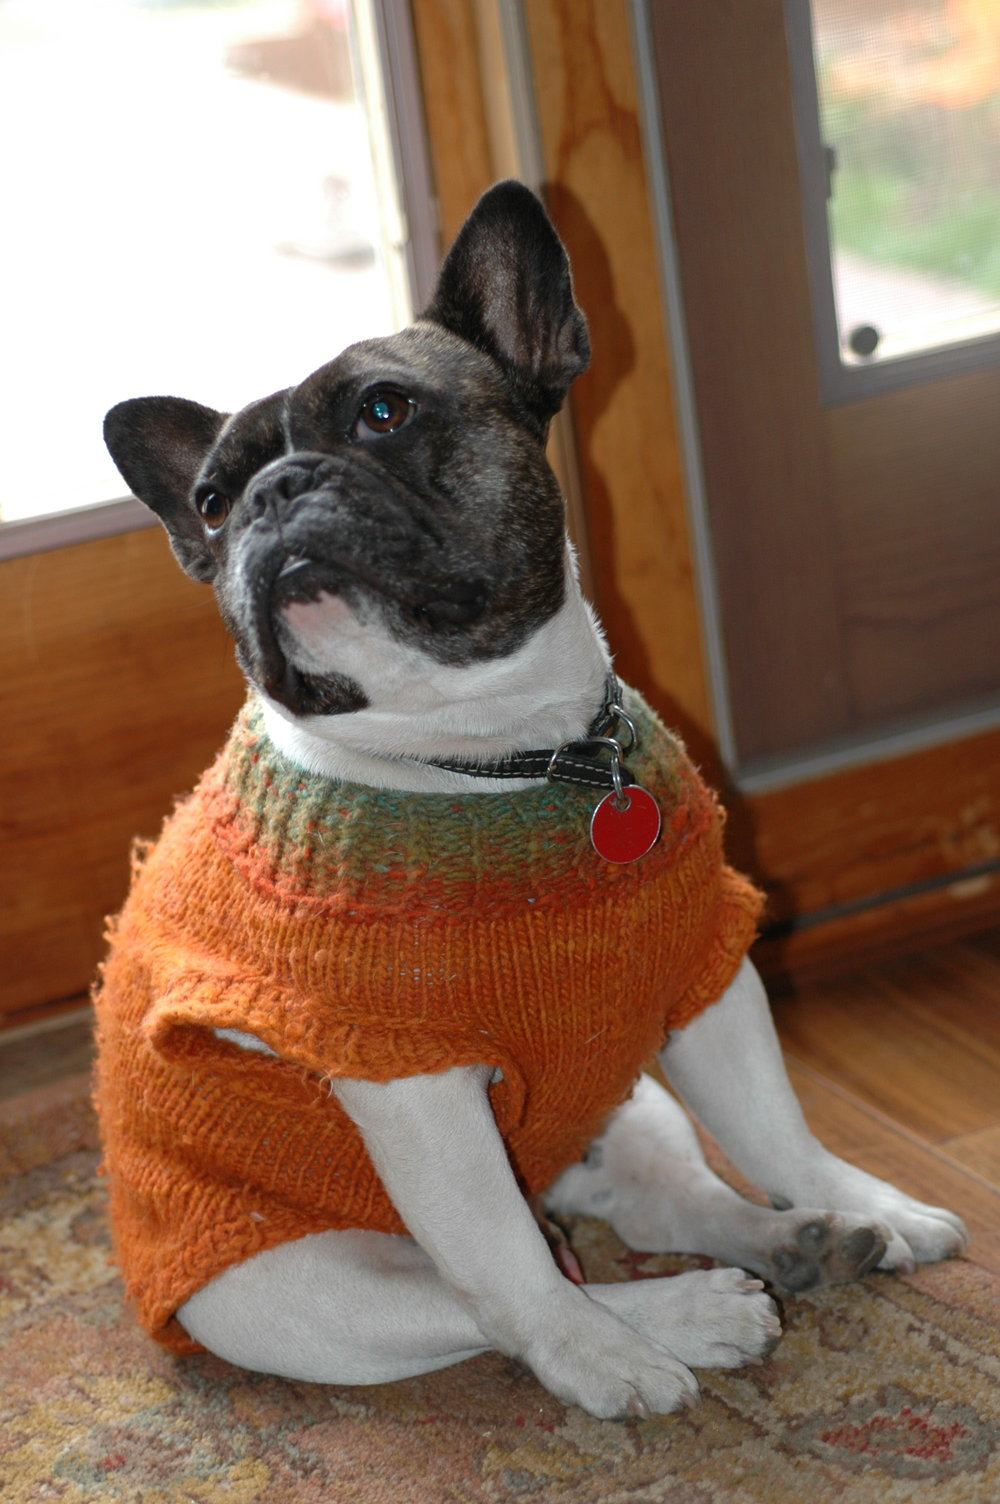 It got a little cold where we live so we would knit him sweaters!